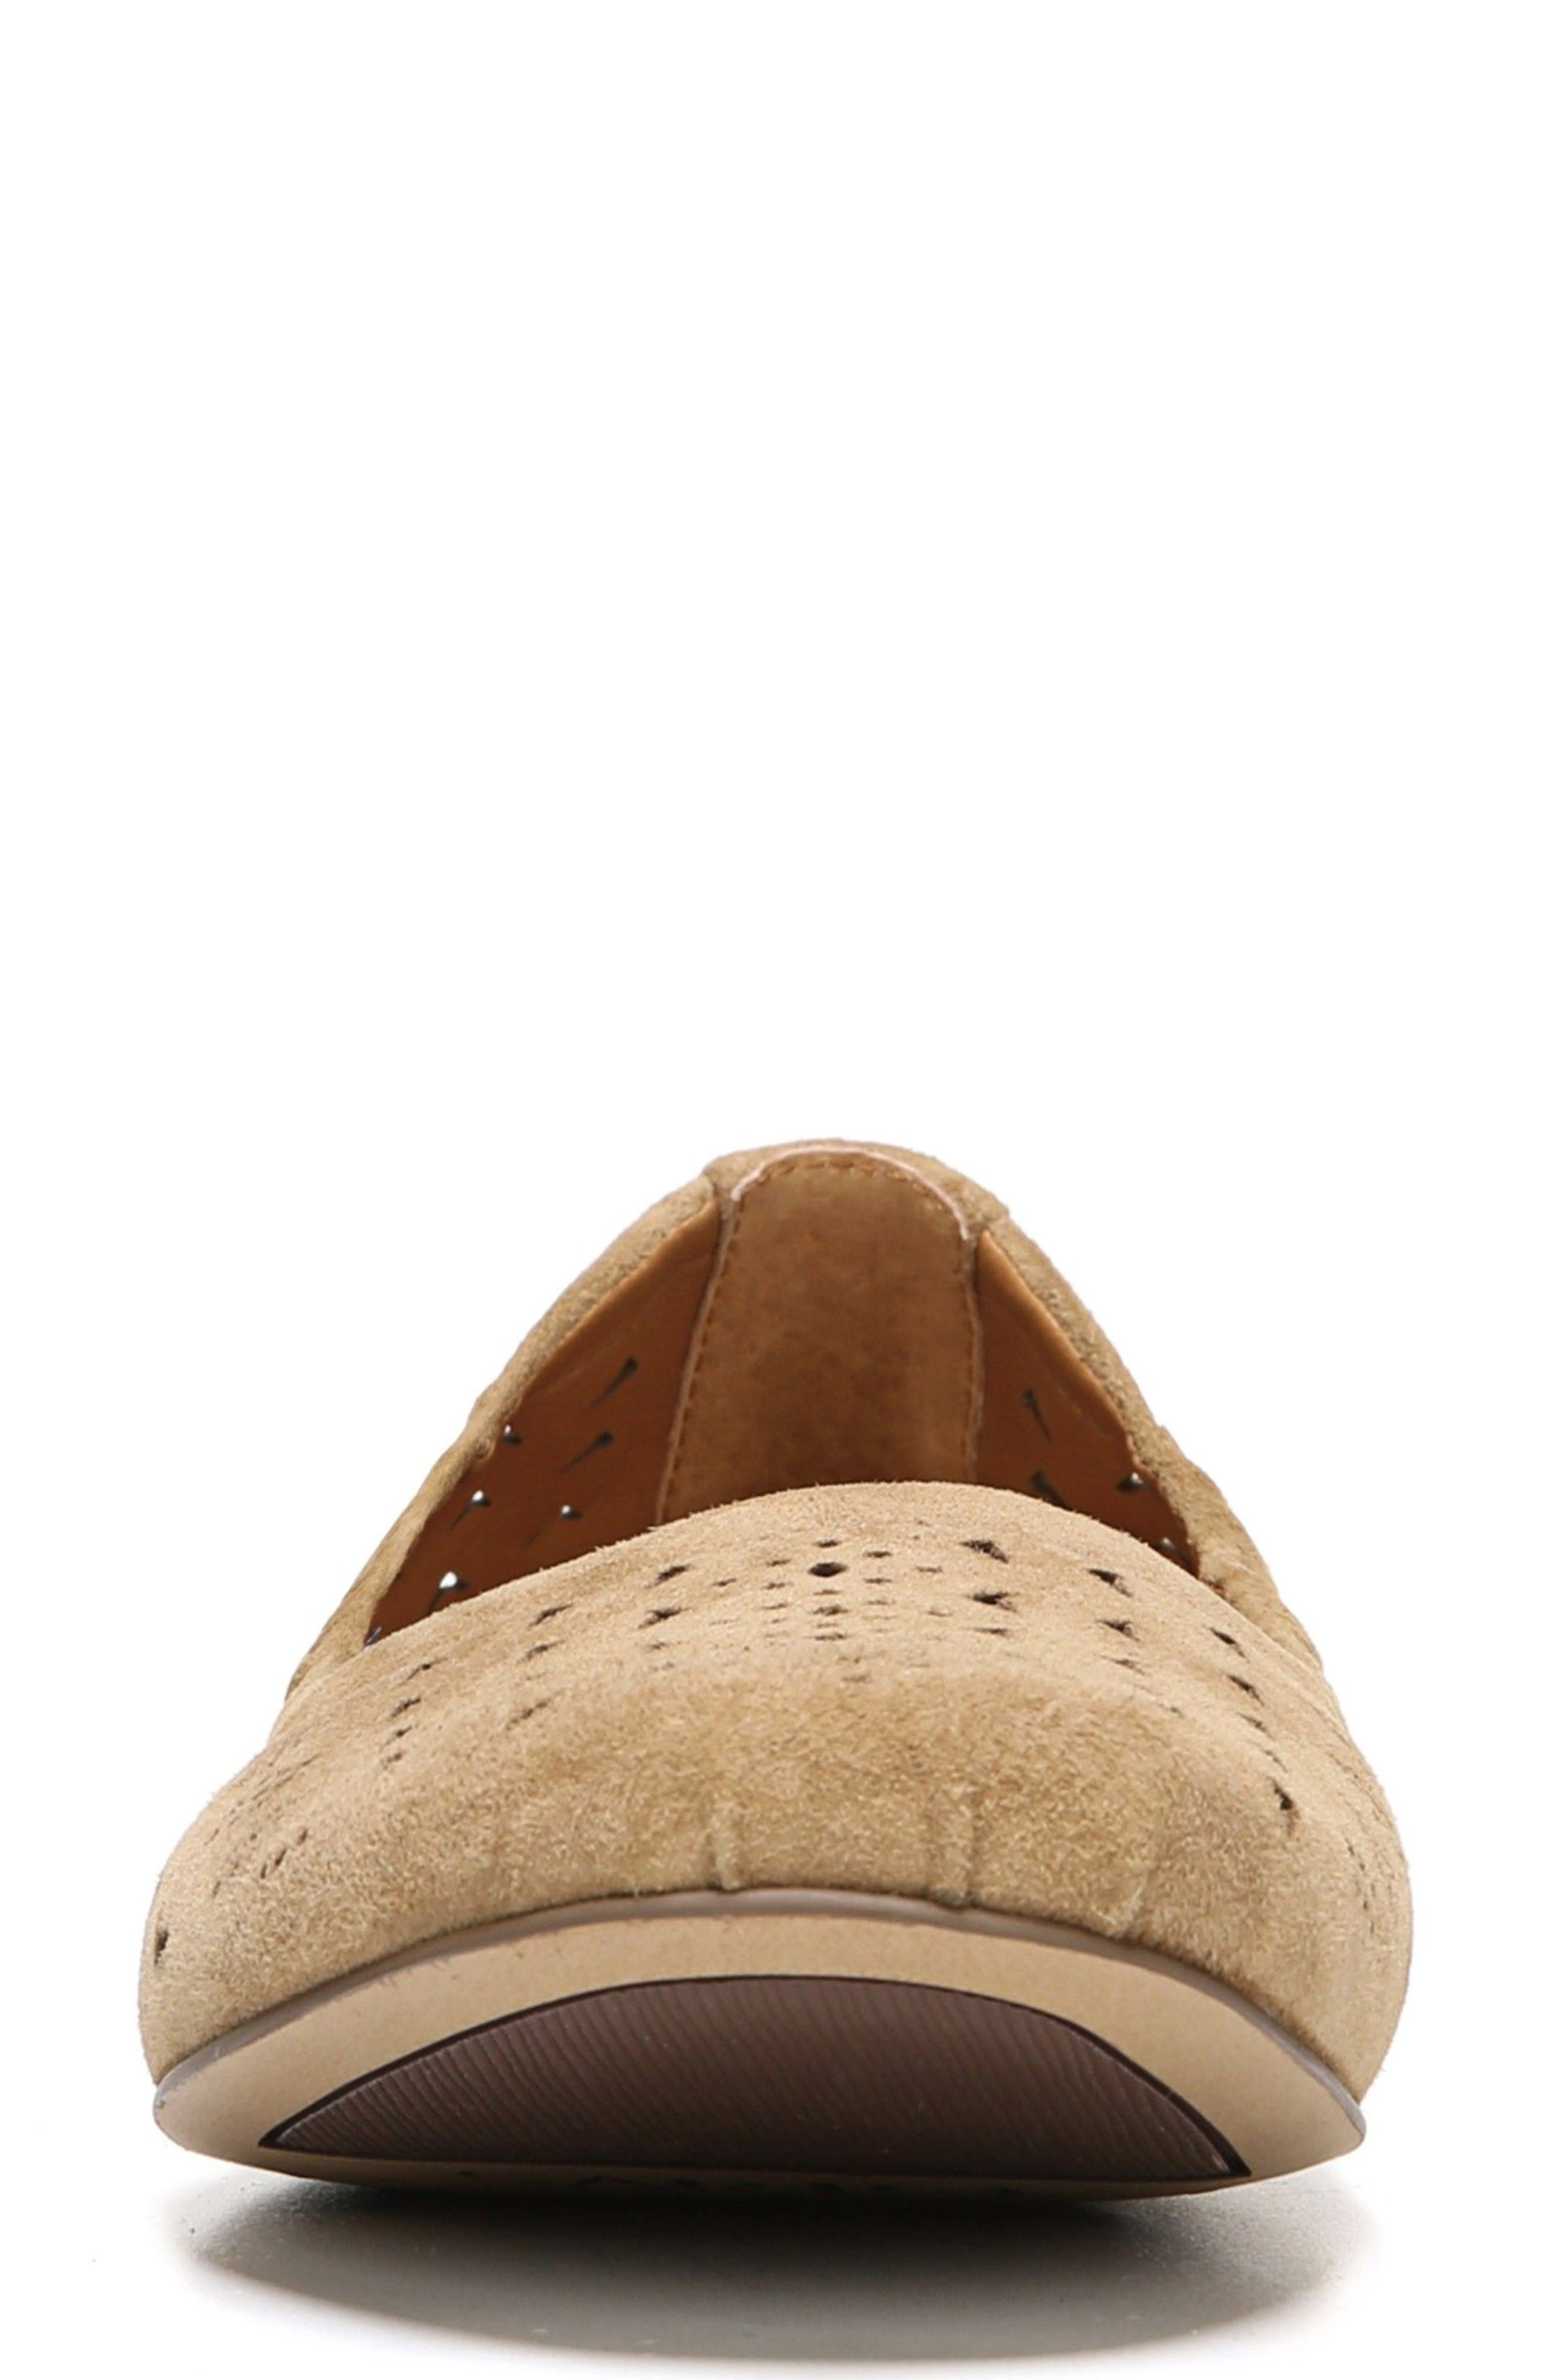 Alternate Image 4  - SARTO by Franco Sarto Brewer Perforated Ballet Flat (Women)